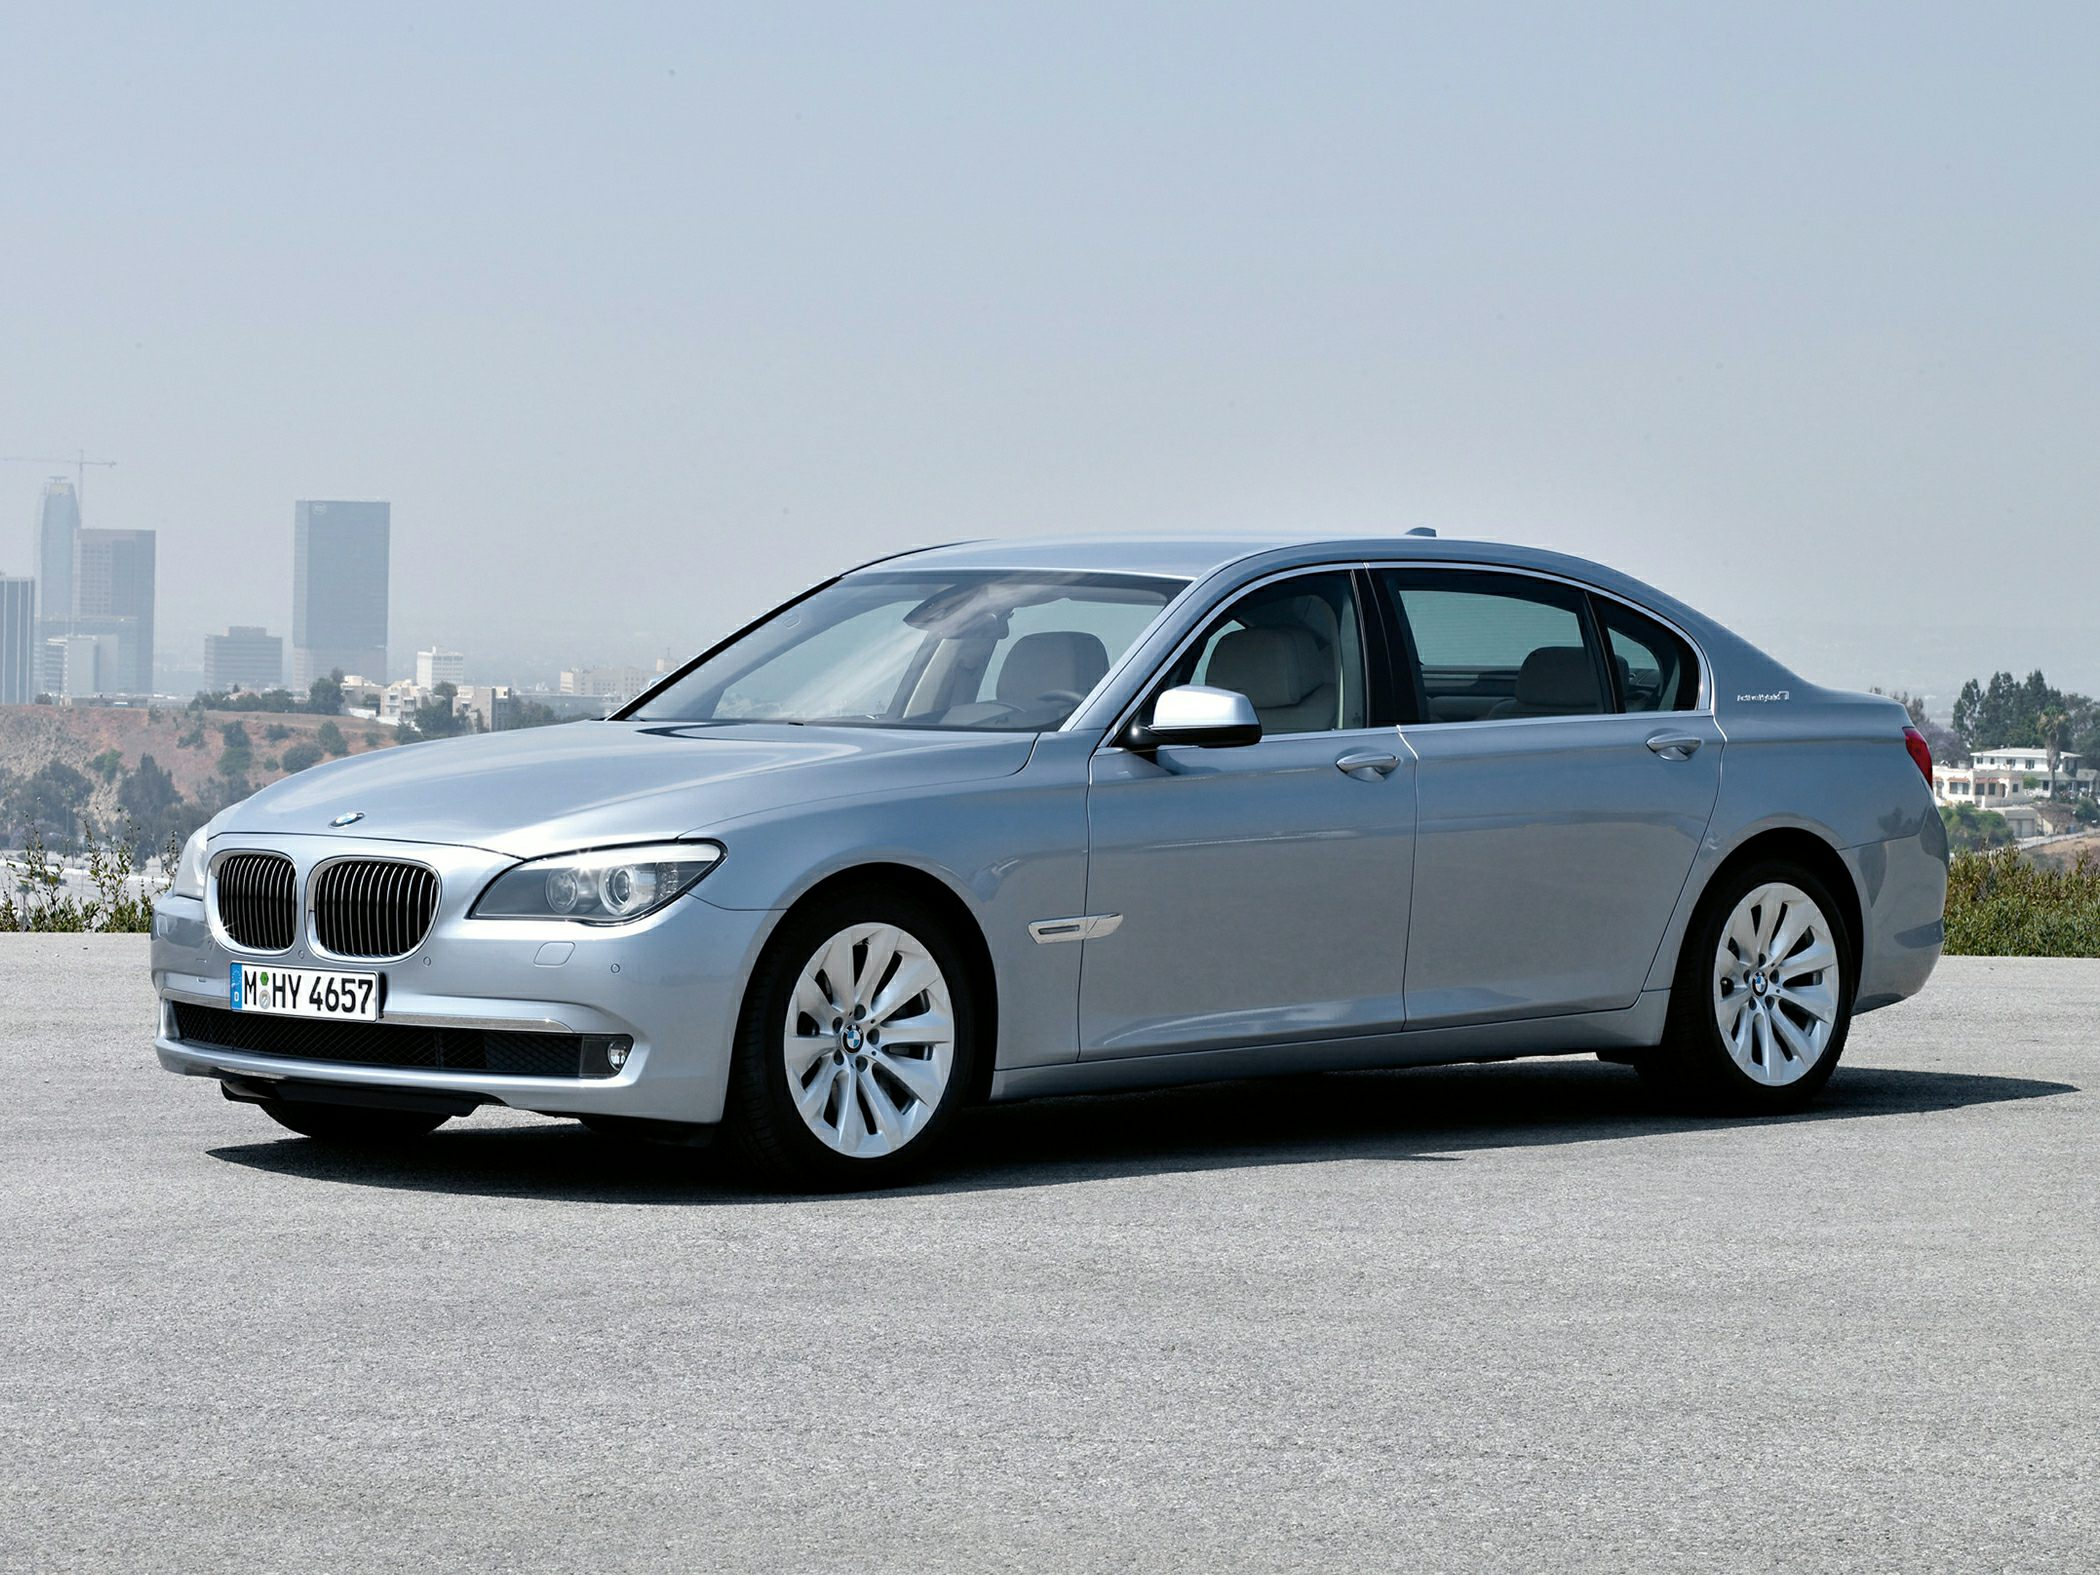 BMW ActiveHybrid 7 Sedan